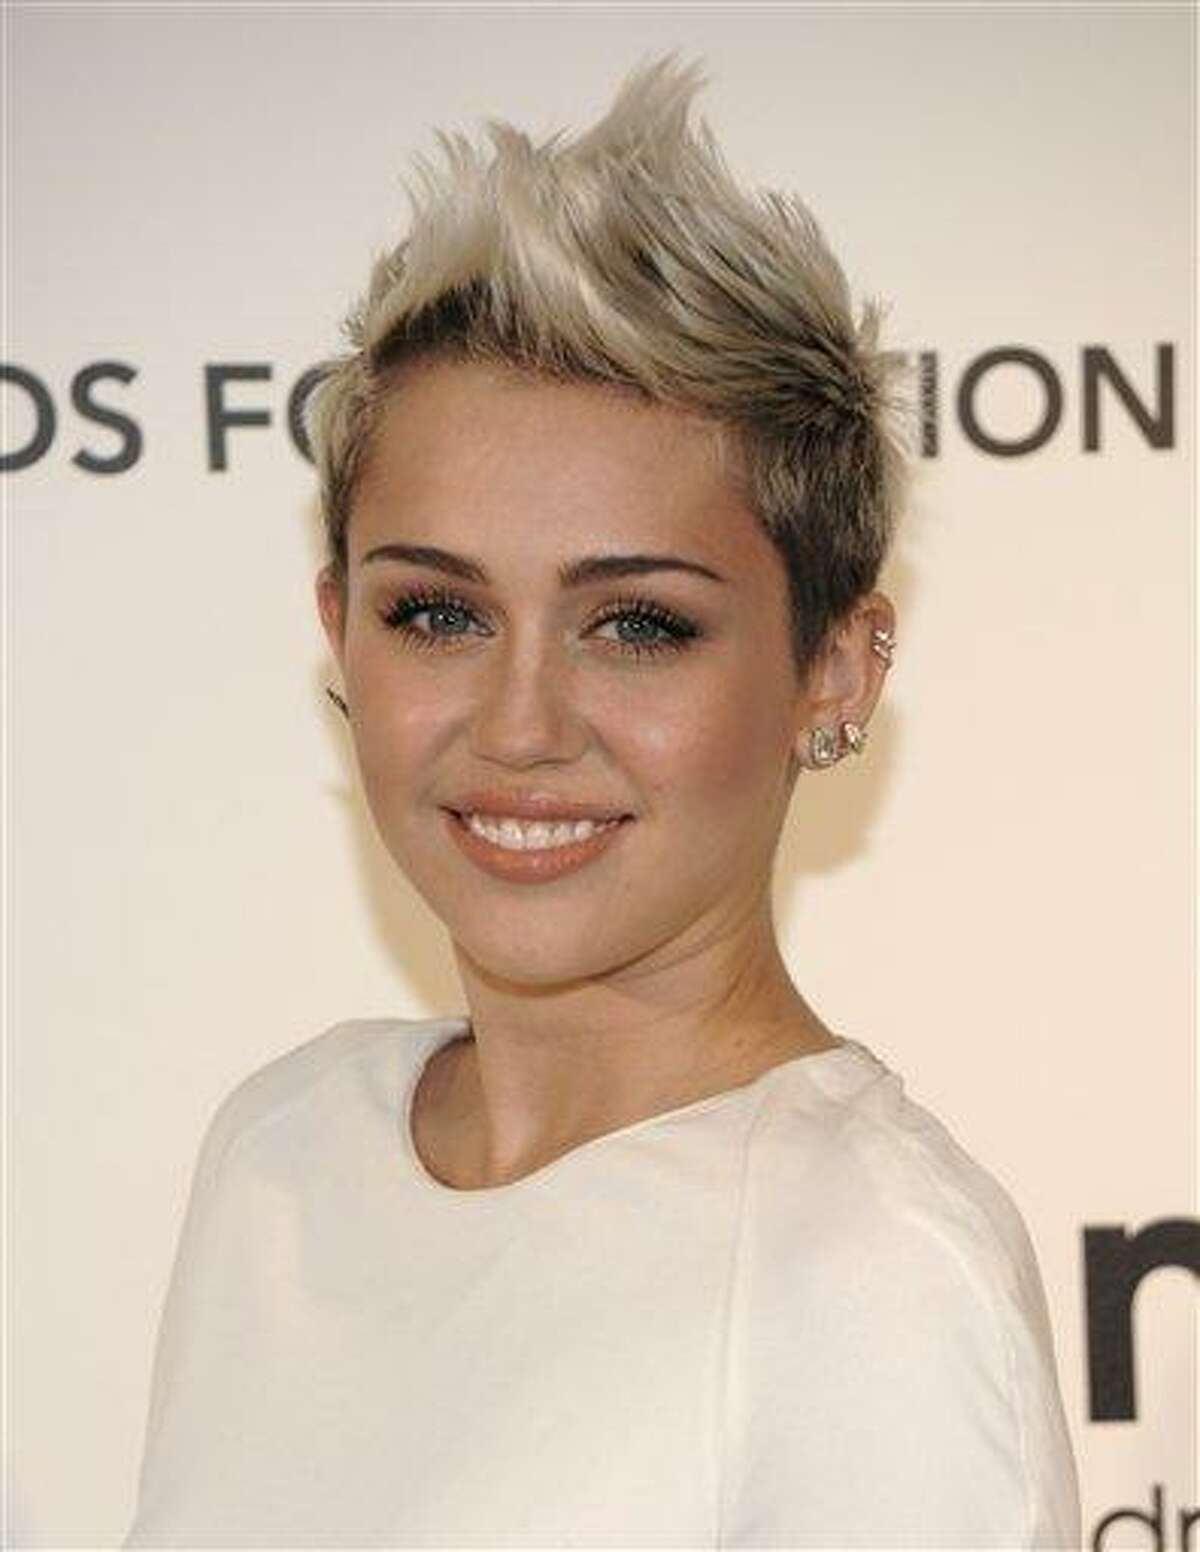 Singer and actress Miley Cyrus arrives at the 2013 Elton John Oscar Party in West Hollywood, Calif. on Sunday, Feb. 24, 2013. (Dan Steinberg/Invision/AP)